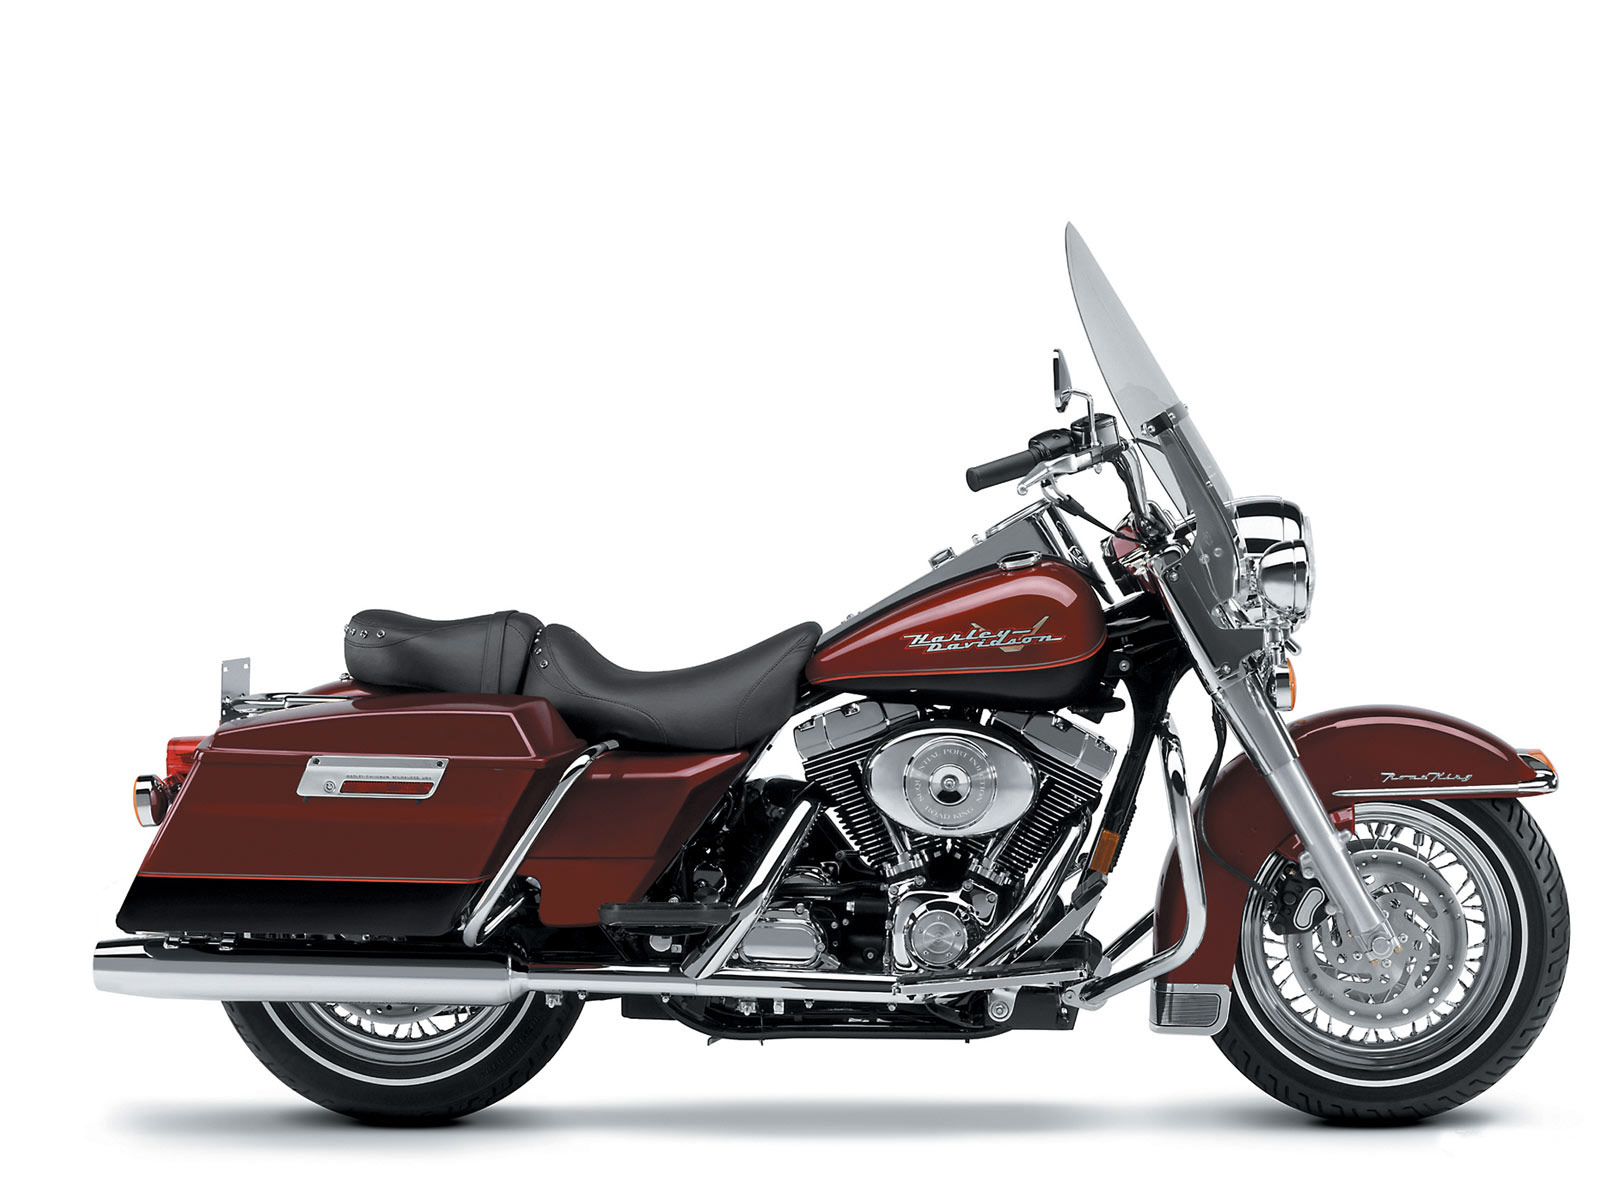 Flhr Road King 2002 Harley Davidson Pictures Specifications